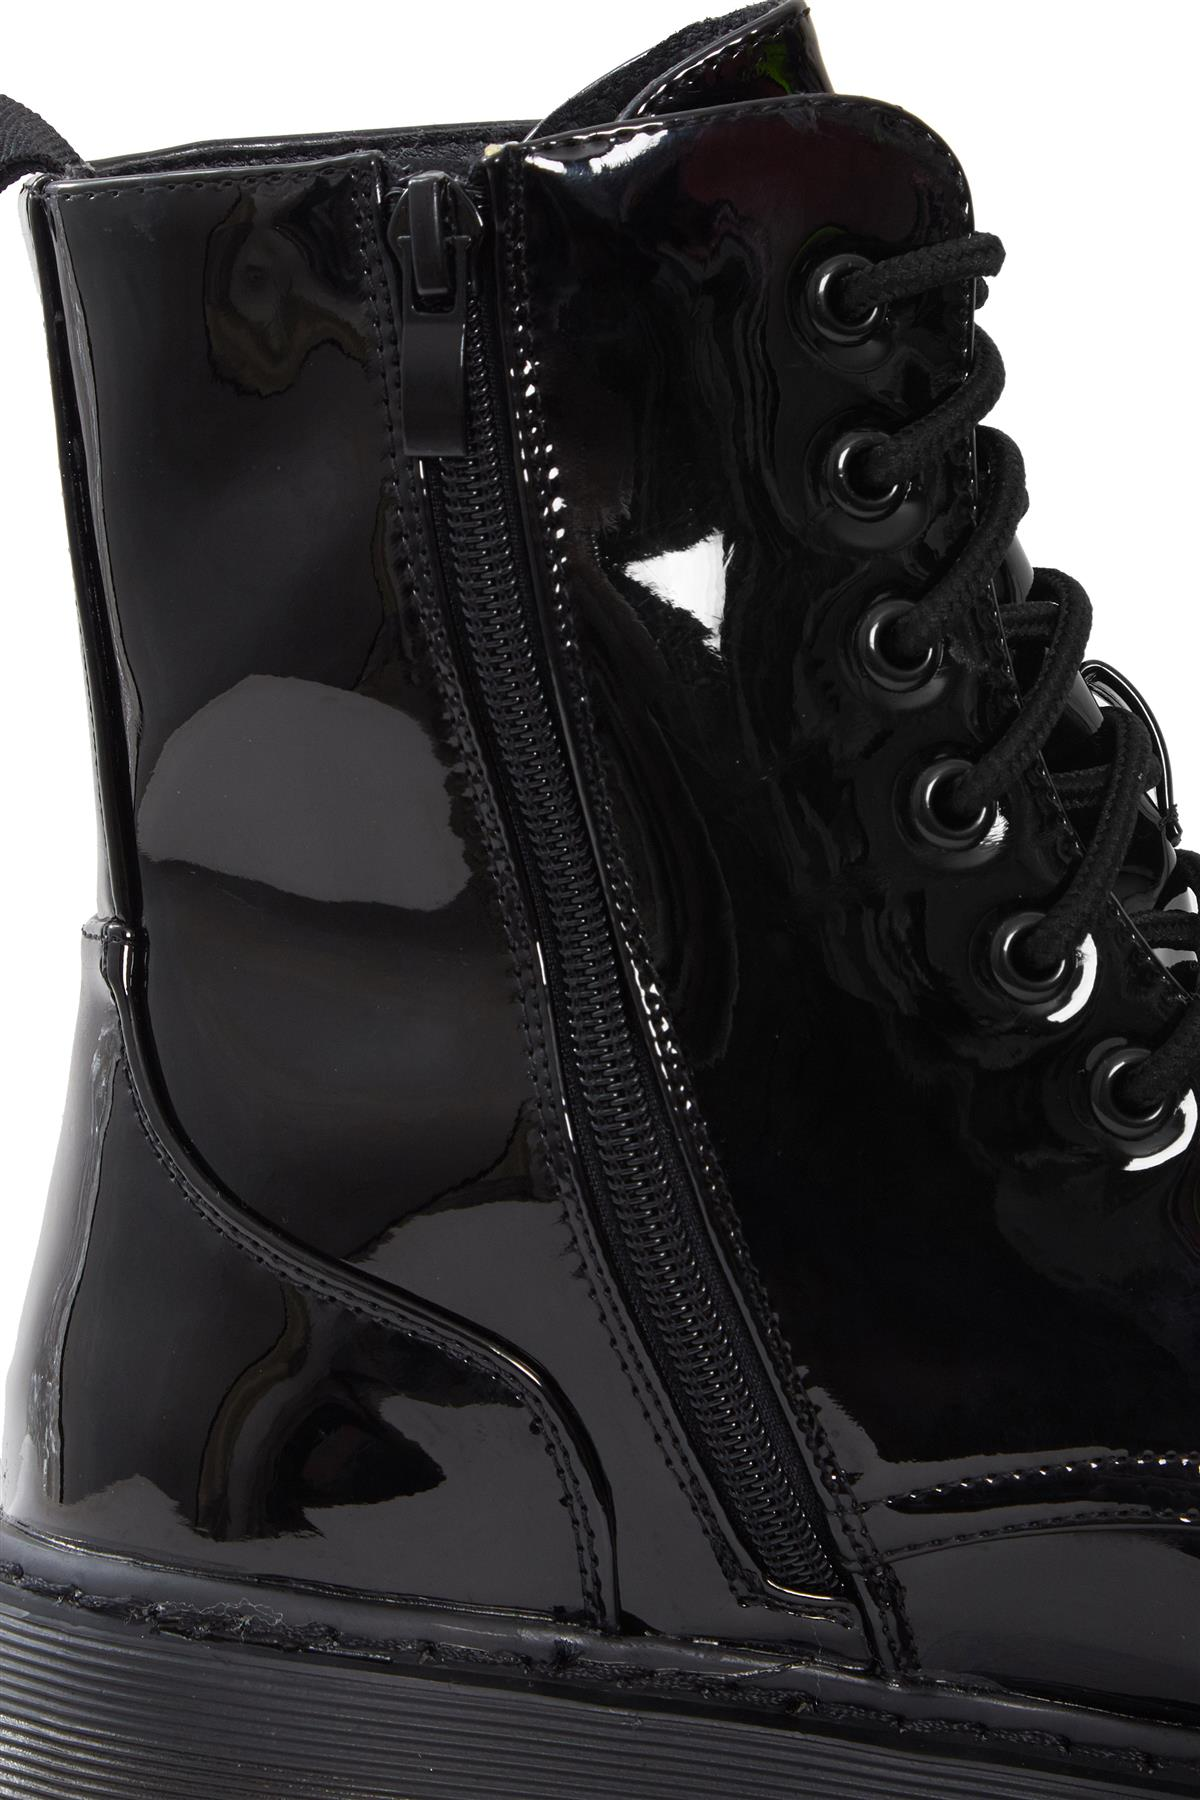 Womens-HiTop-Platform-Military-Punk-Biker-Ankle-PU-Leather-Lace-Up-Vintage-Boots thumbnail 4